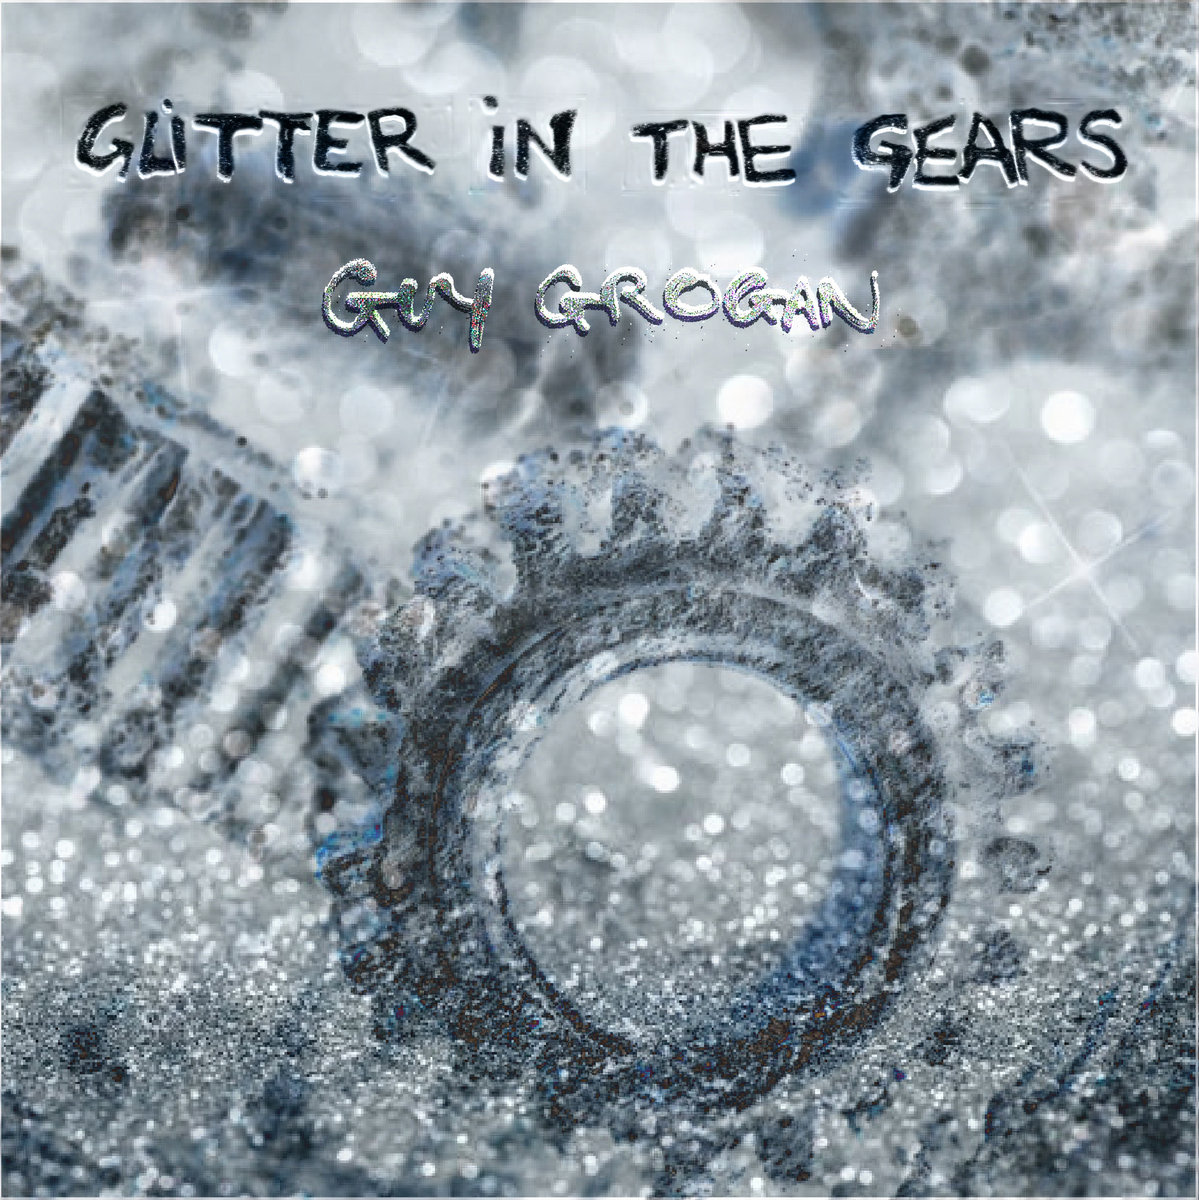 Glitter in the gears